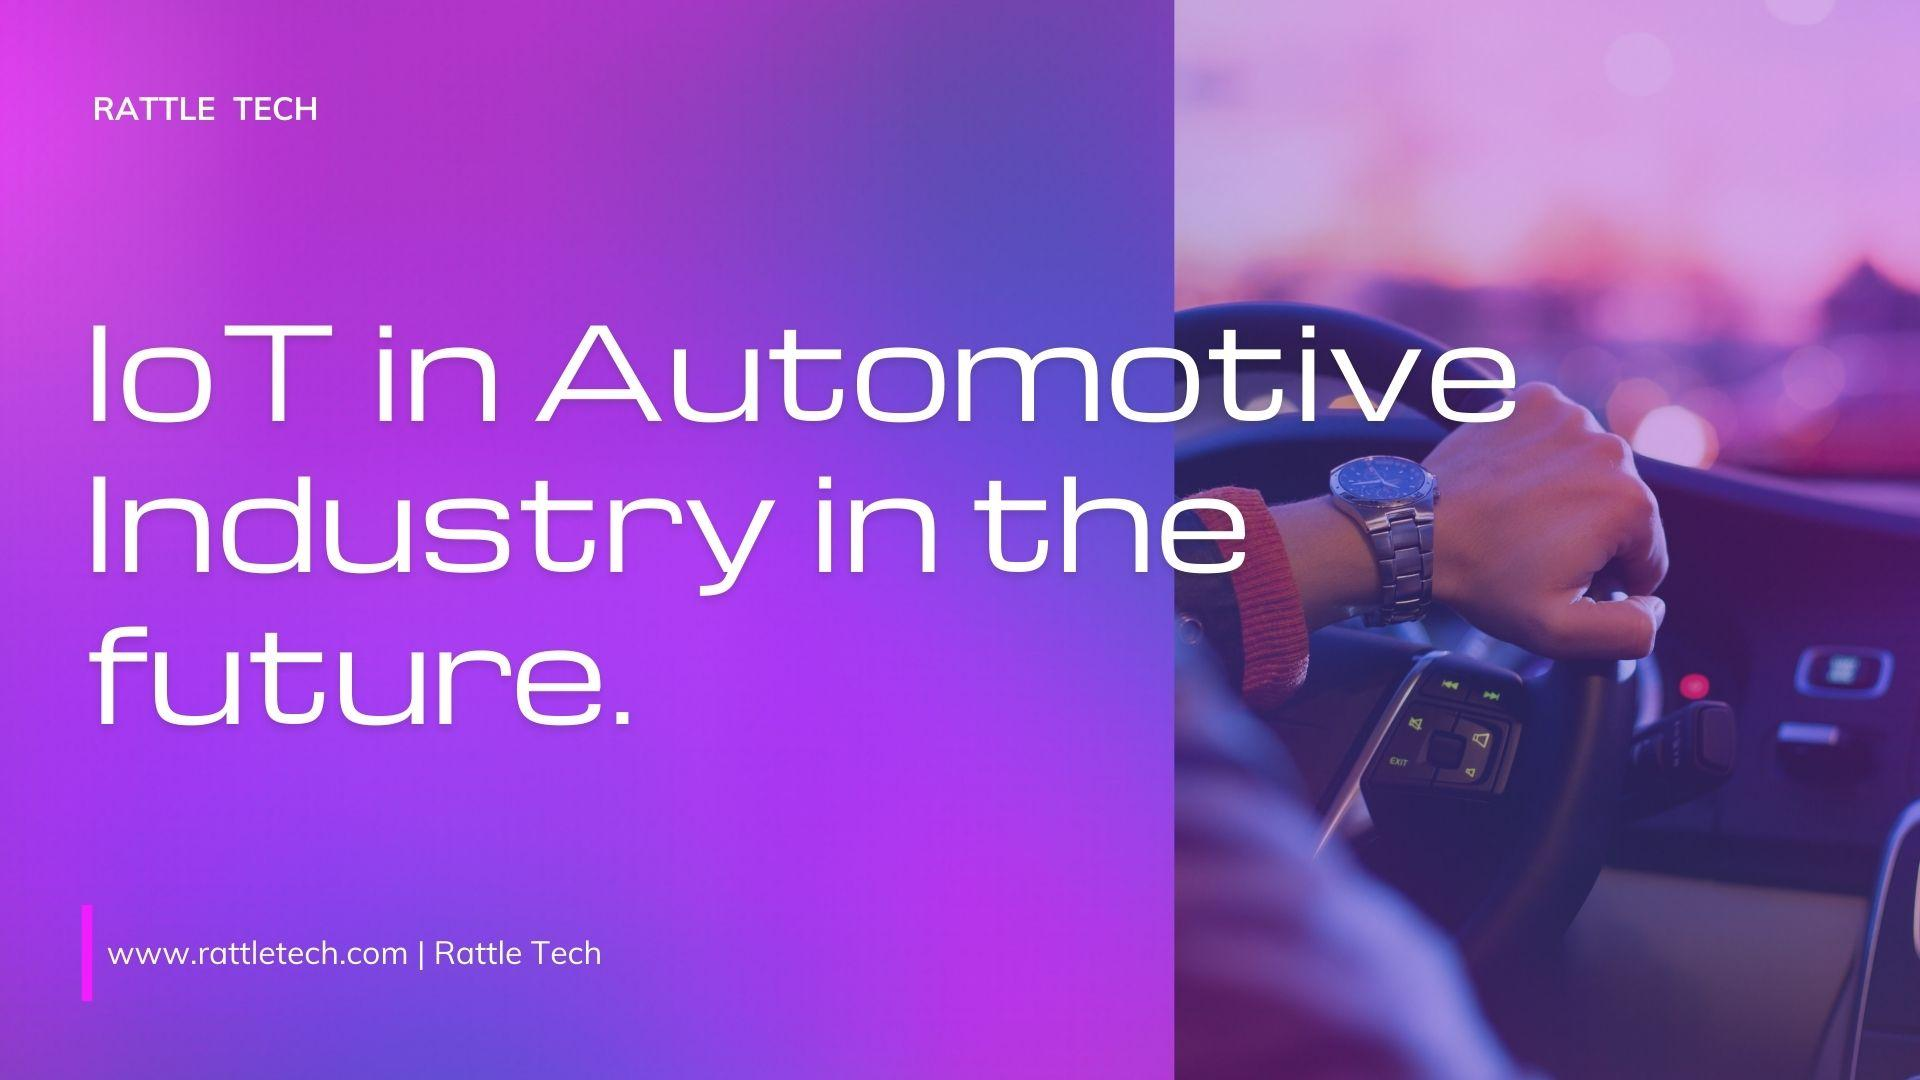 IoT in Automotive Industry in the future.